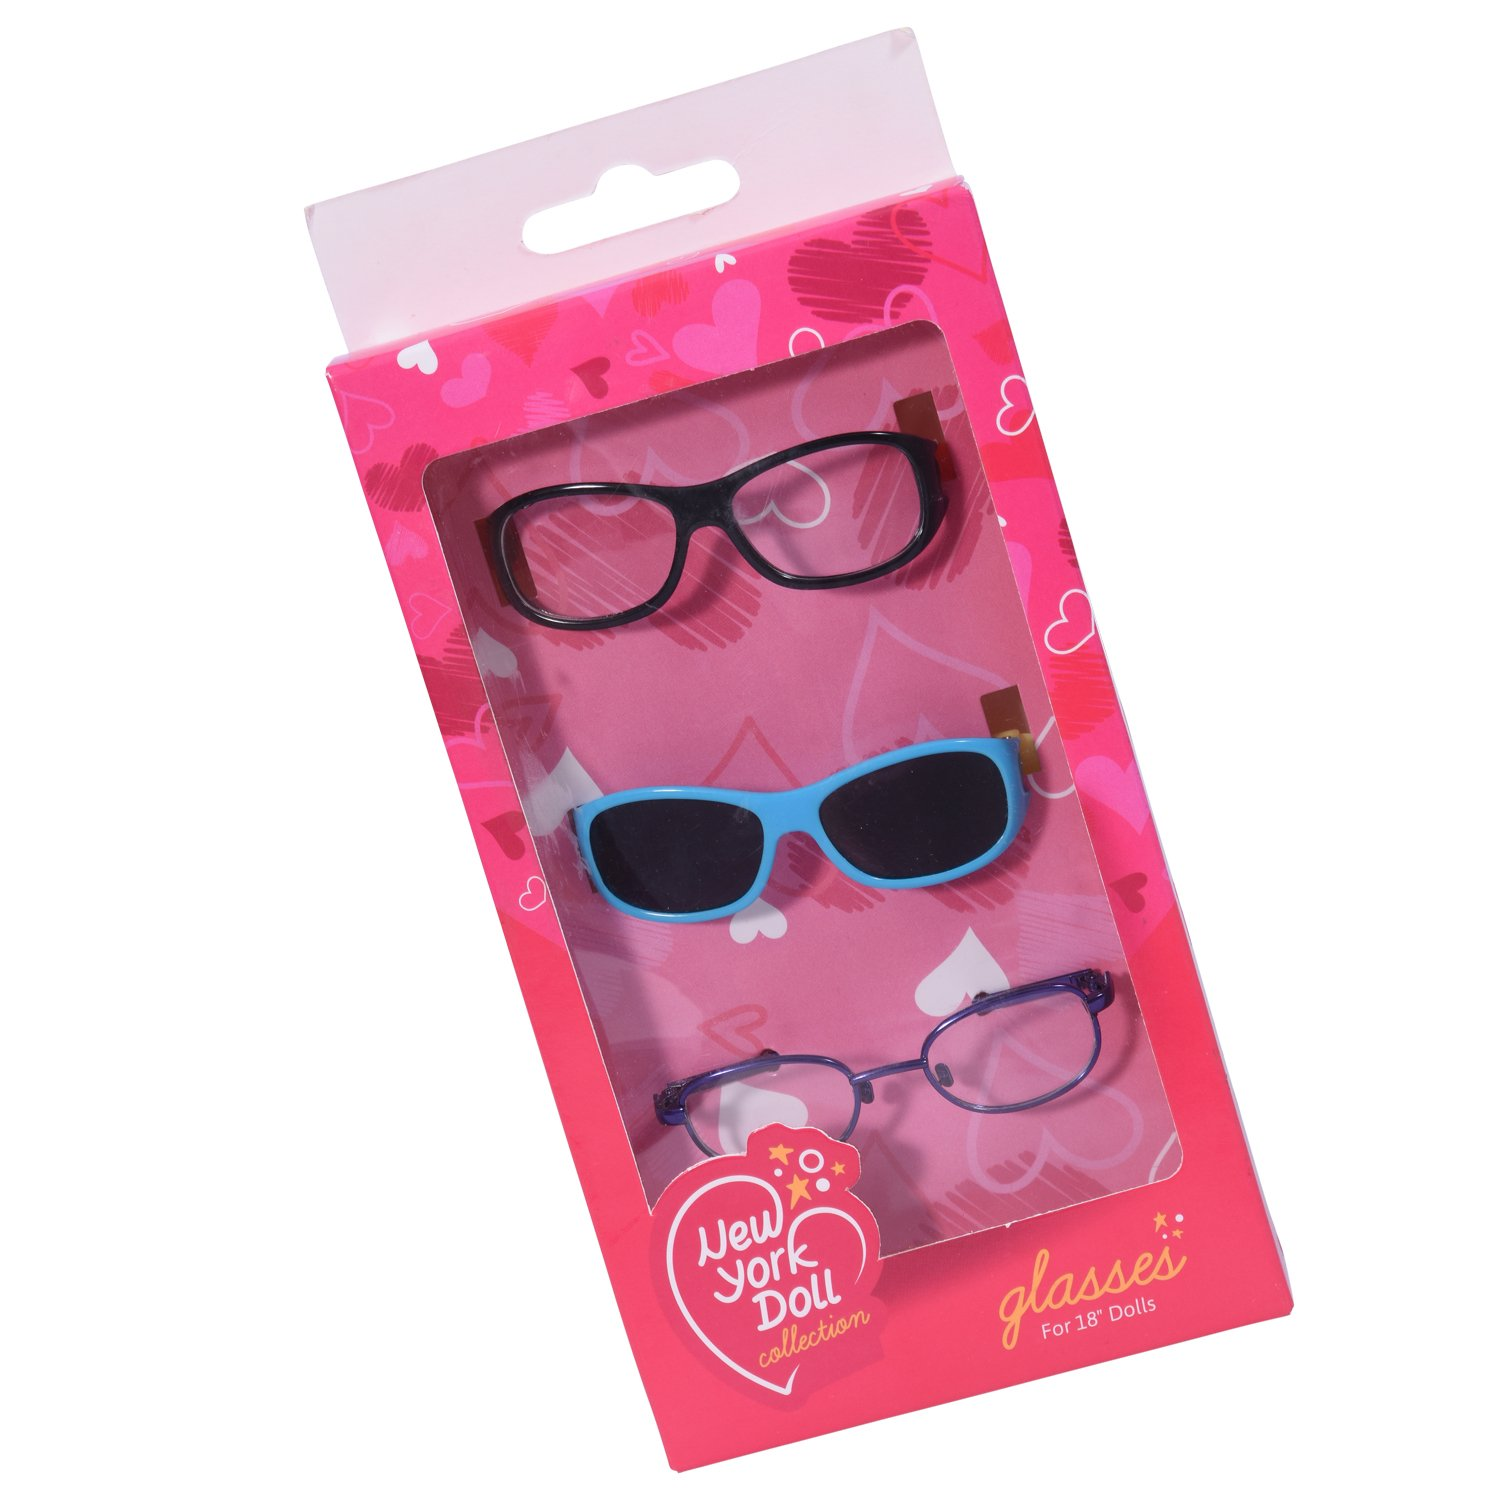 Set of 3 Doll Glasses by The New York Doll Collection